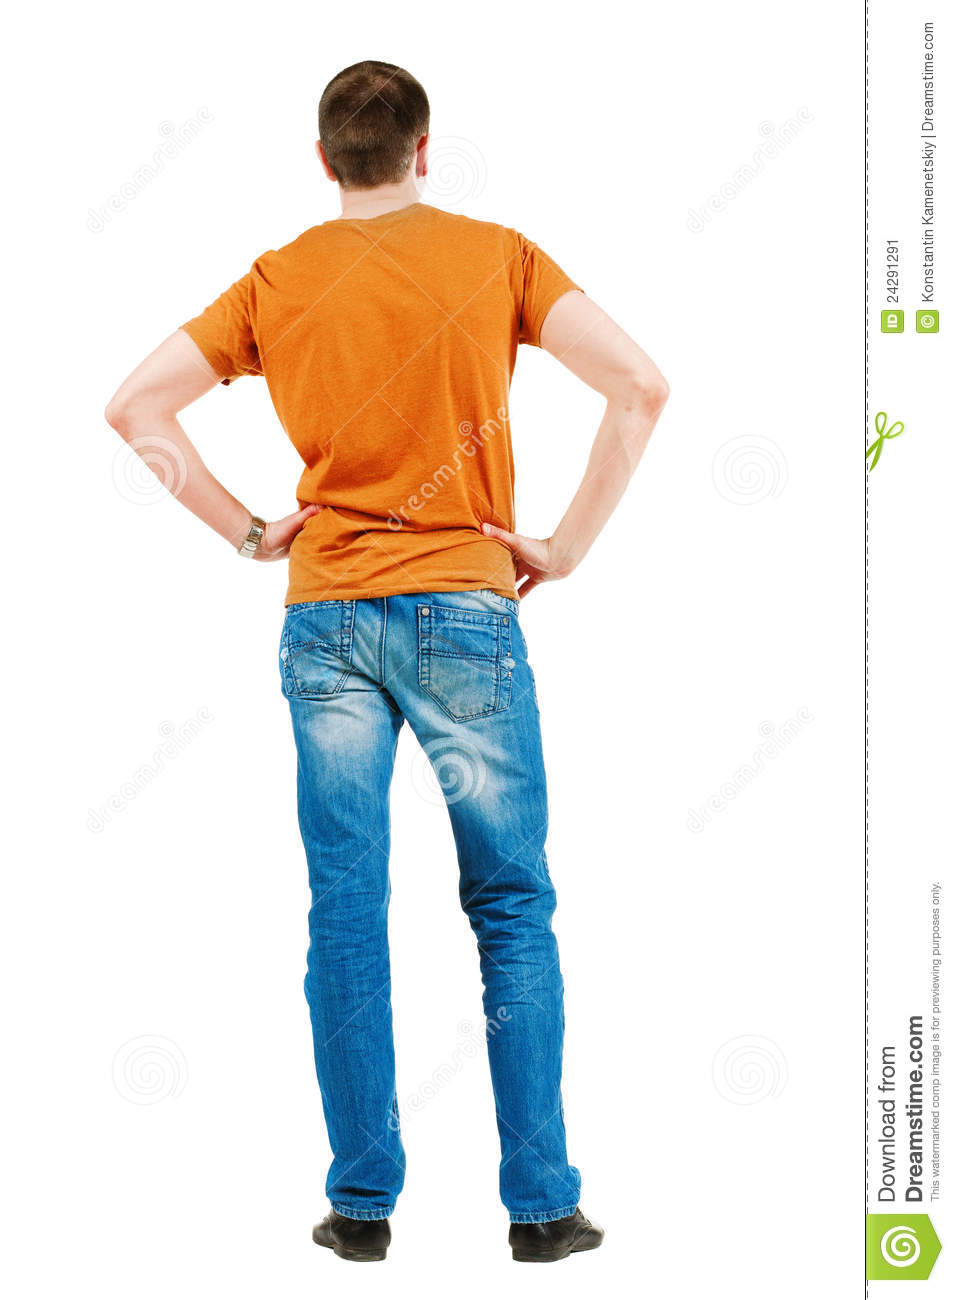 Back View Of Young Man In Orange T Shirt Guy Looks At Wall Rear View Isolated Over White Background